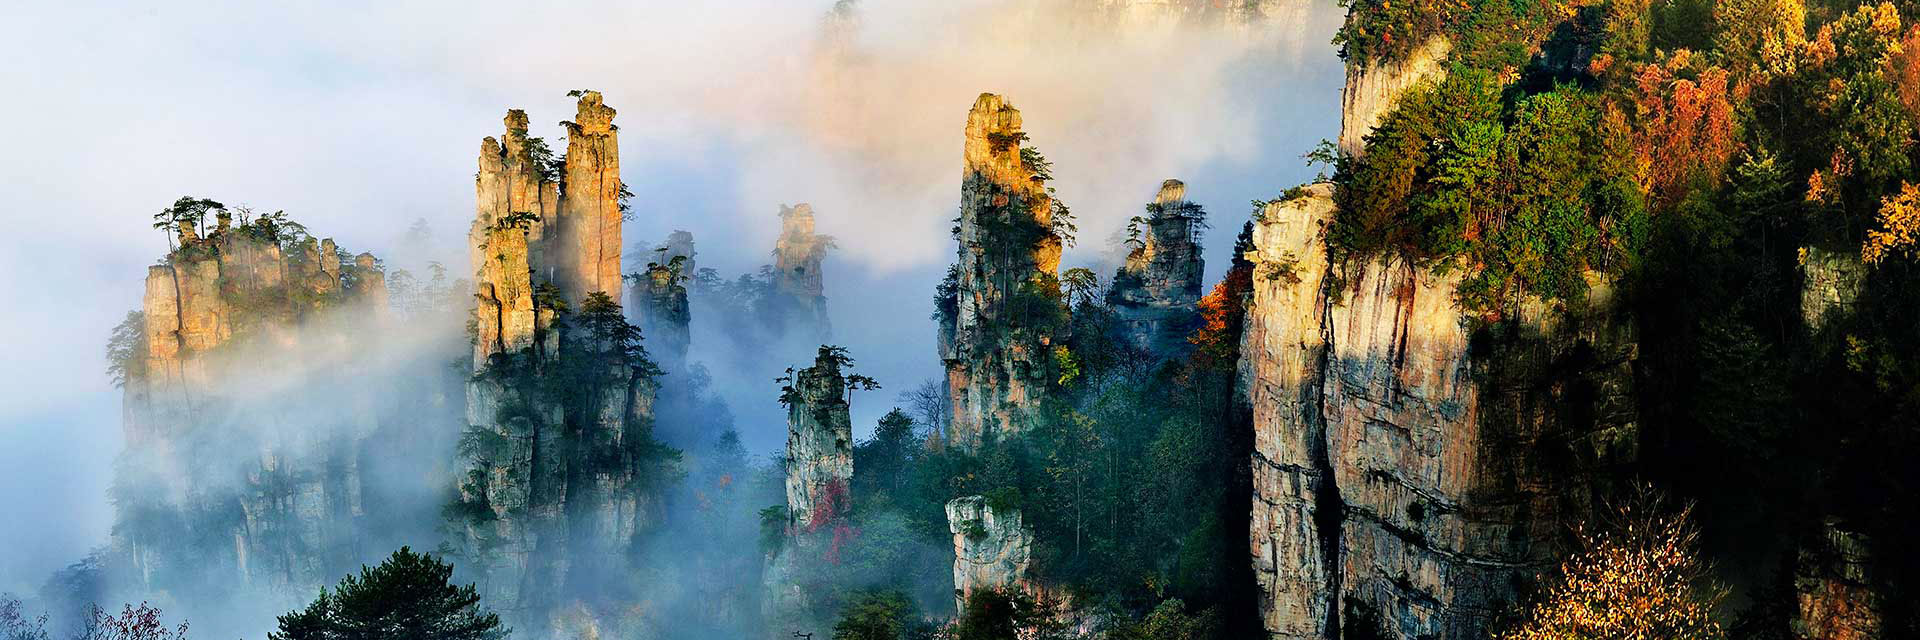 Zhangjiajie Travel